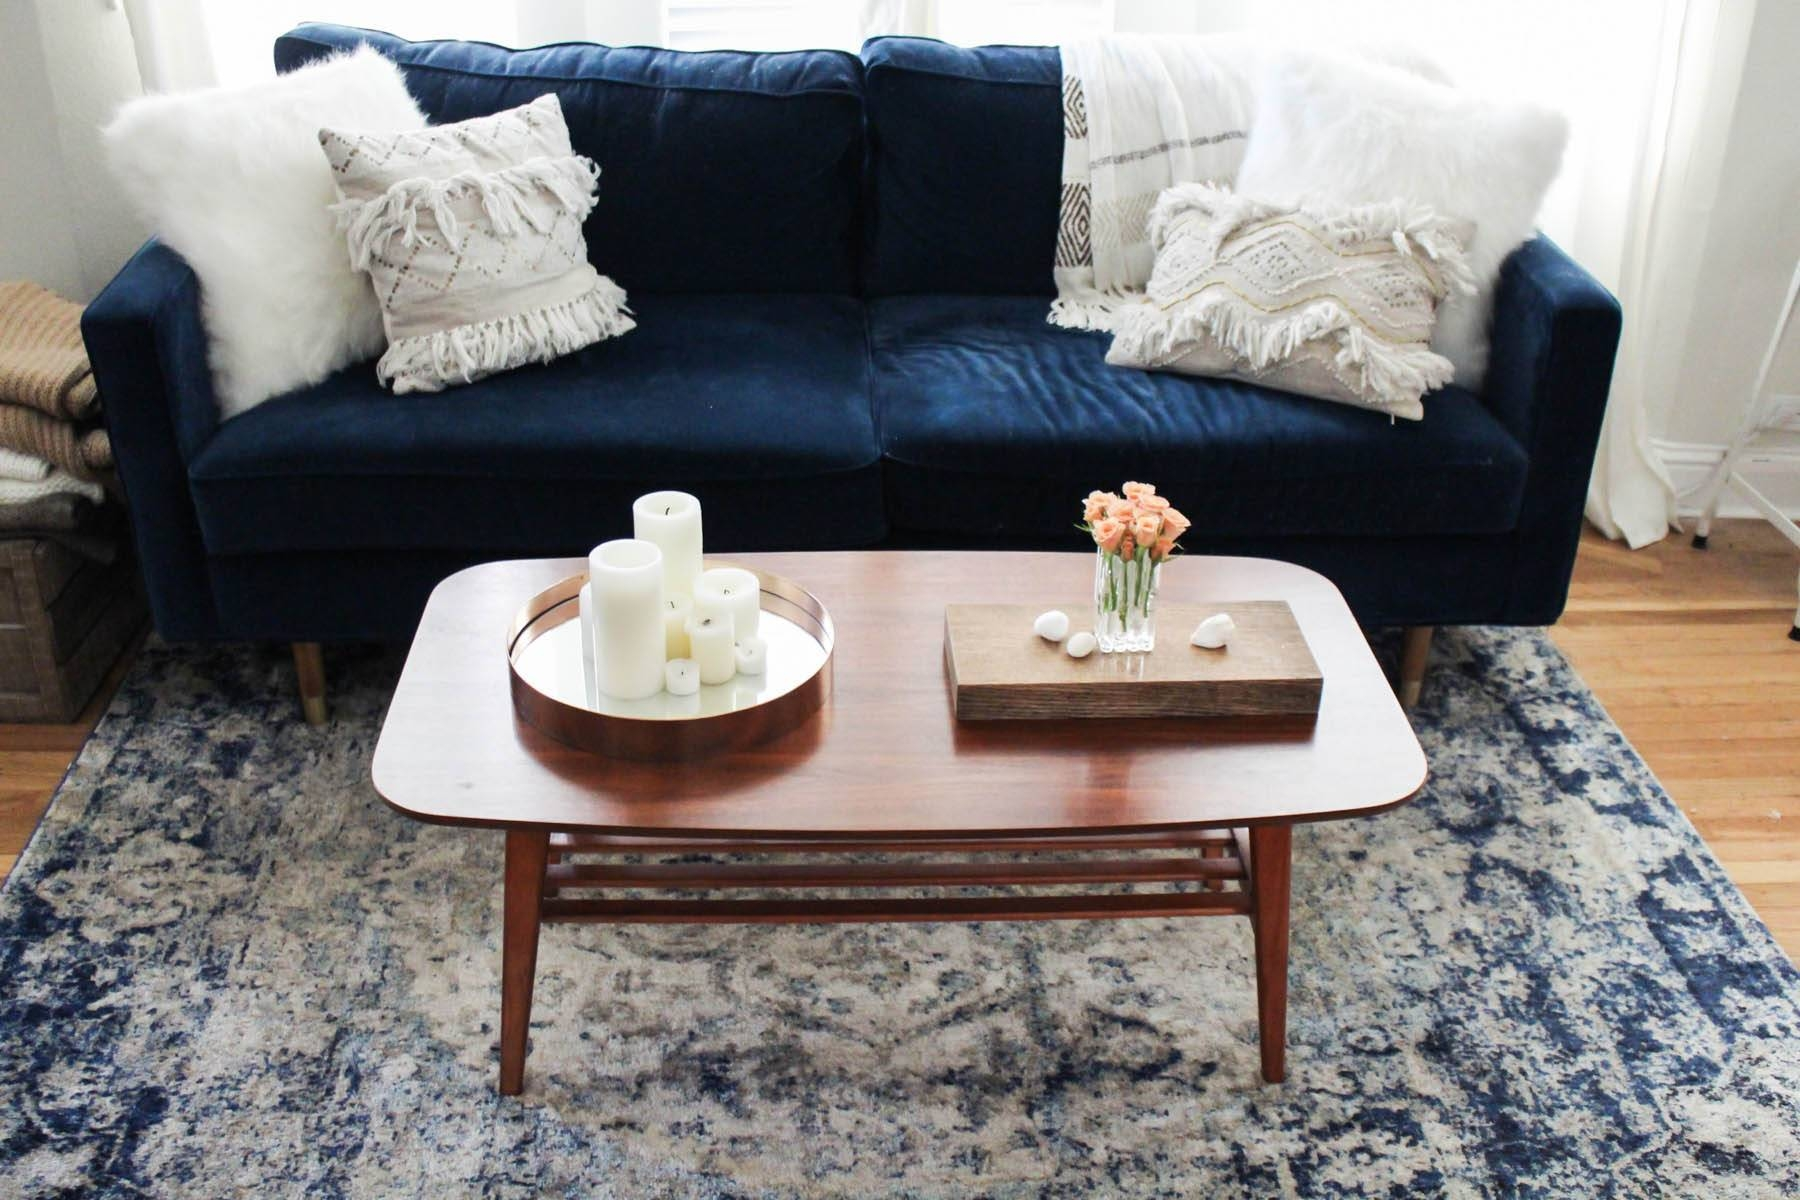 3 Ways To Style A Coffee Table - Aol intended for Buddha Coffee Tables (Image 3 of 30)